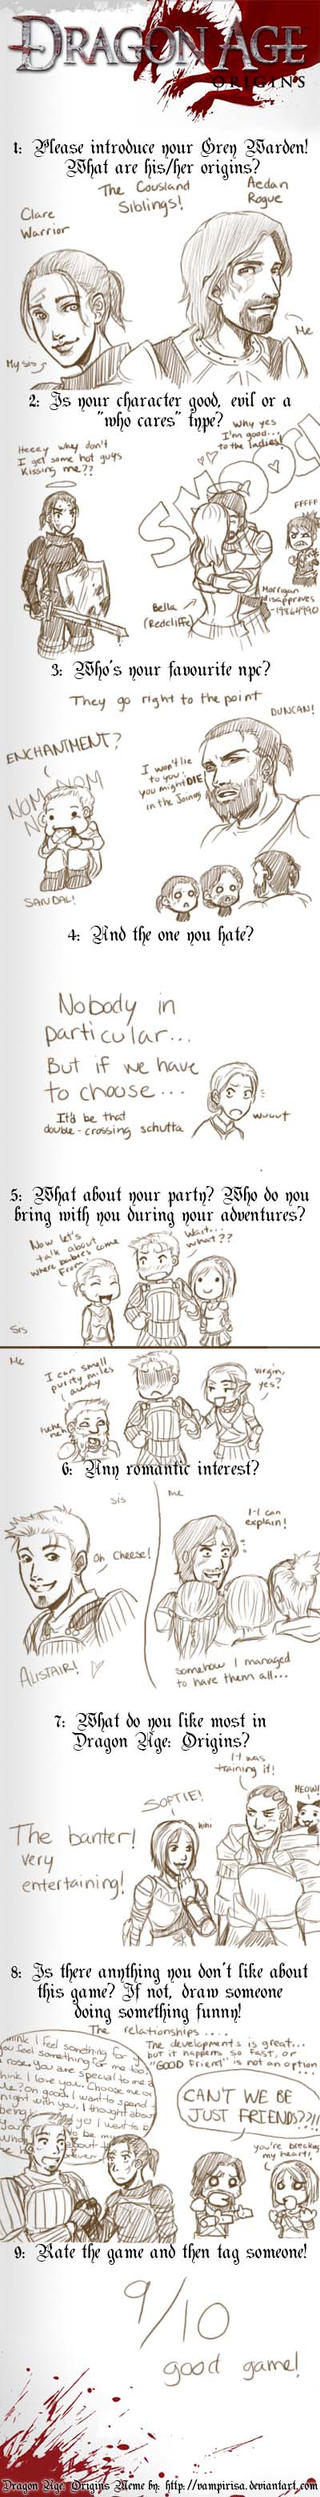 Dragon Age Origins Meme by pen-gwyn